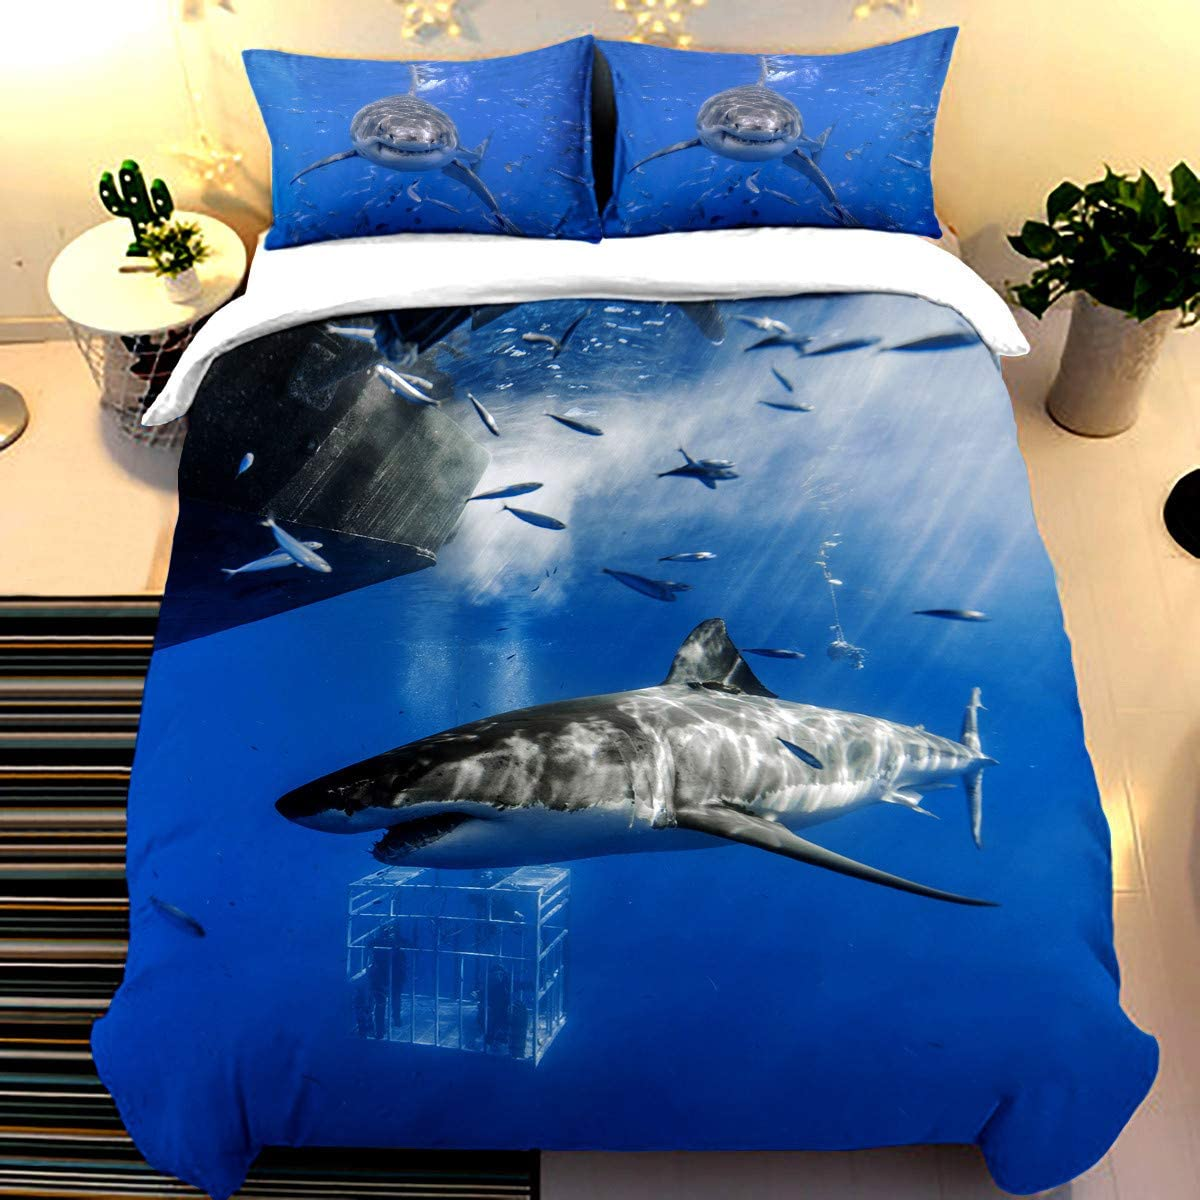 "Shark Style 3D Digital Print Bedding Sets with 2 Pillowcases Ocean of Fish Creative Cartoon Shark Print Duvet Cover Sets Soft Microfiber 3Pcs Quilt Cover with Zipper Closure Queen Size 90"" x 90"""